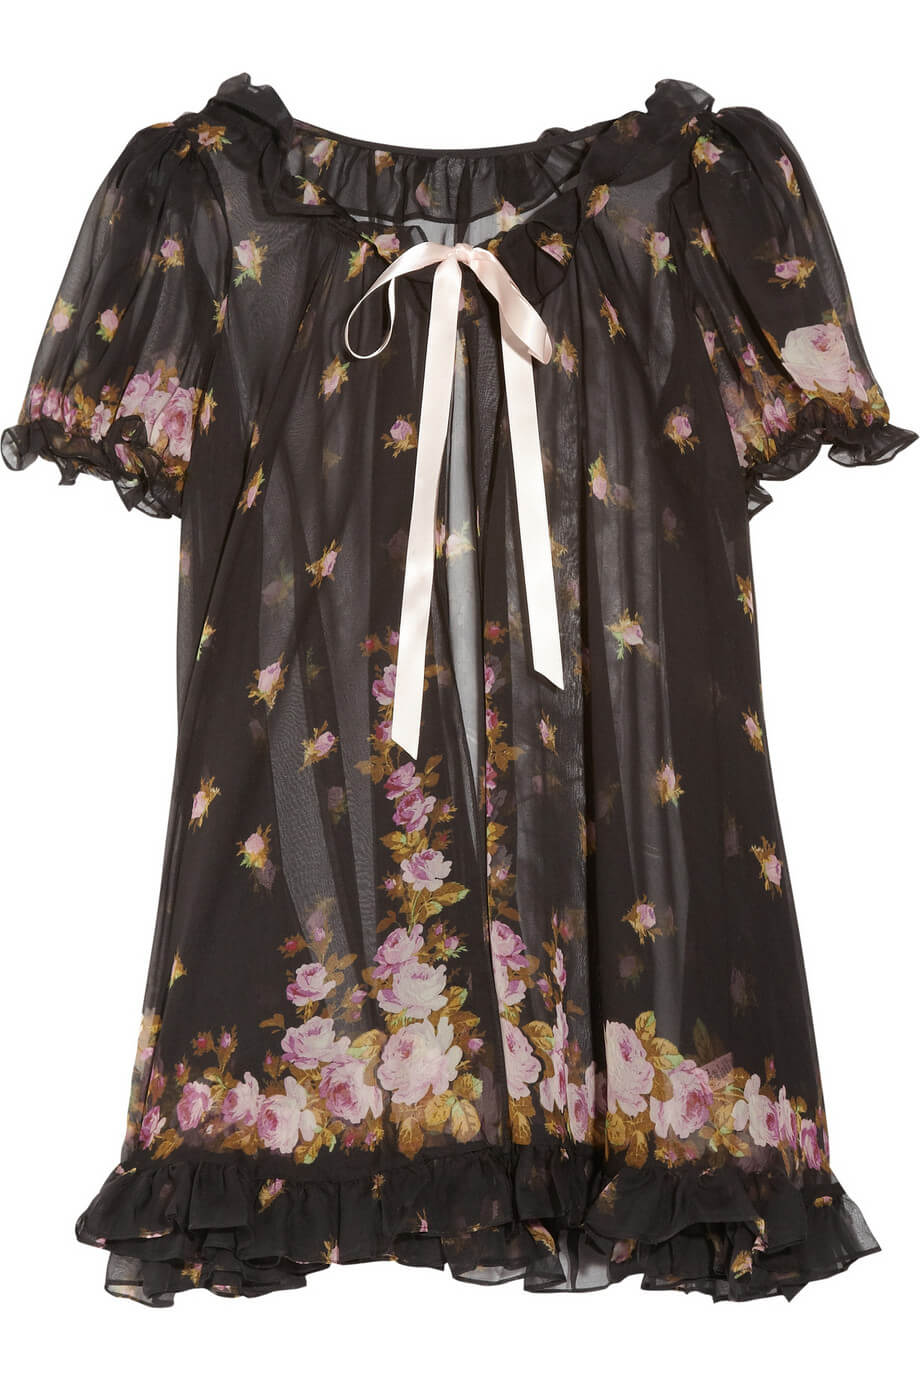 e29541c17f0 Sale Lingerie of the Week  Agent Provocateur  Sybil  Ruffle Floral Print  Silk Chiffon Robe